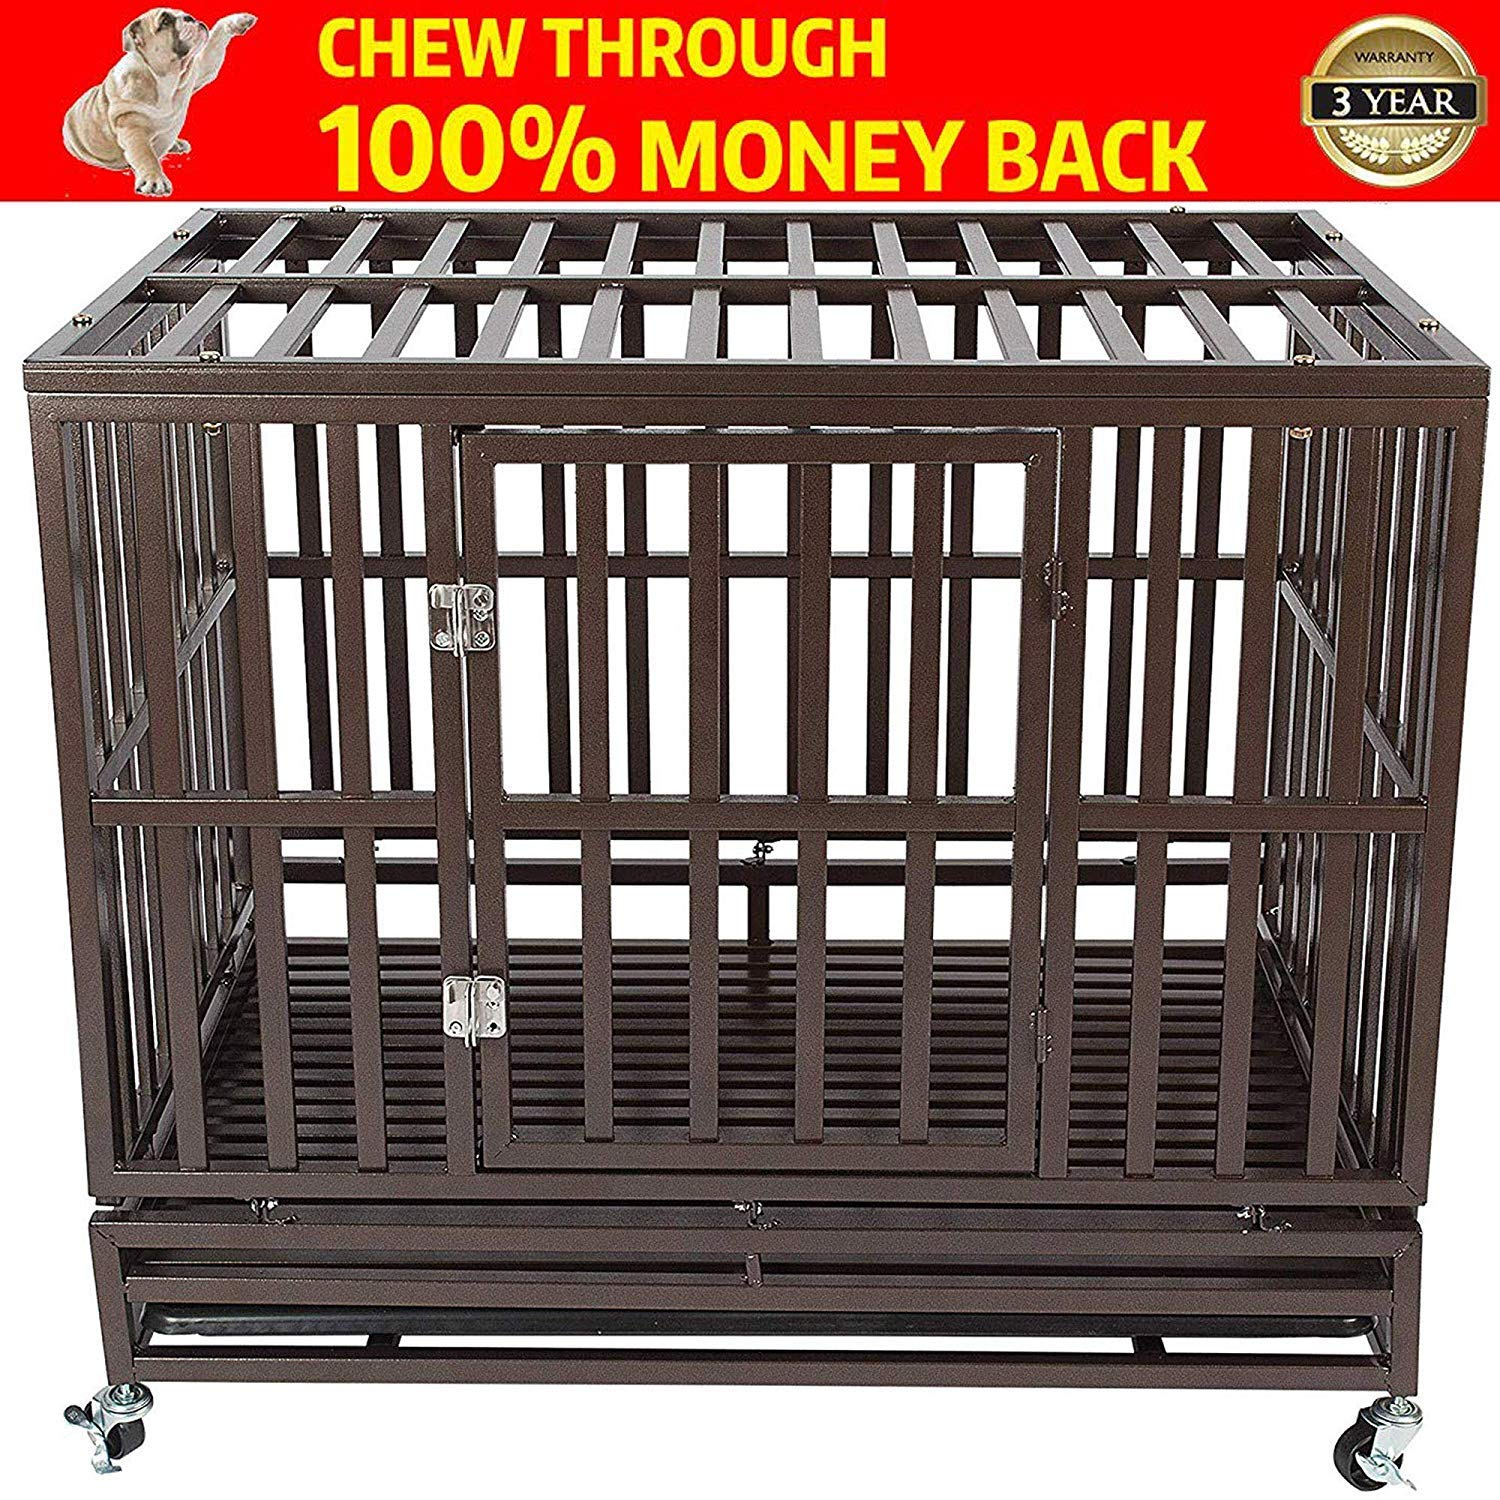 Gelinzon Heavy Duty Dog Crate Cage Kennel Playpen Large Strong Metal for Large Dogs and Pets with Patent Lock and Four Lockable Wheels, Easy to Assemble by Gelinzon